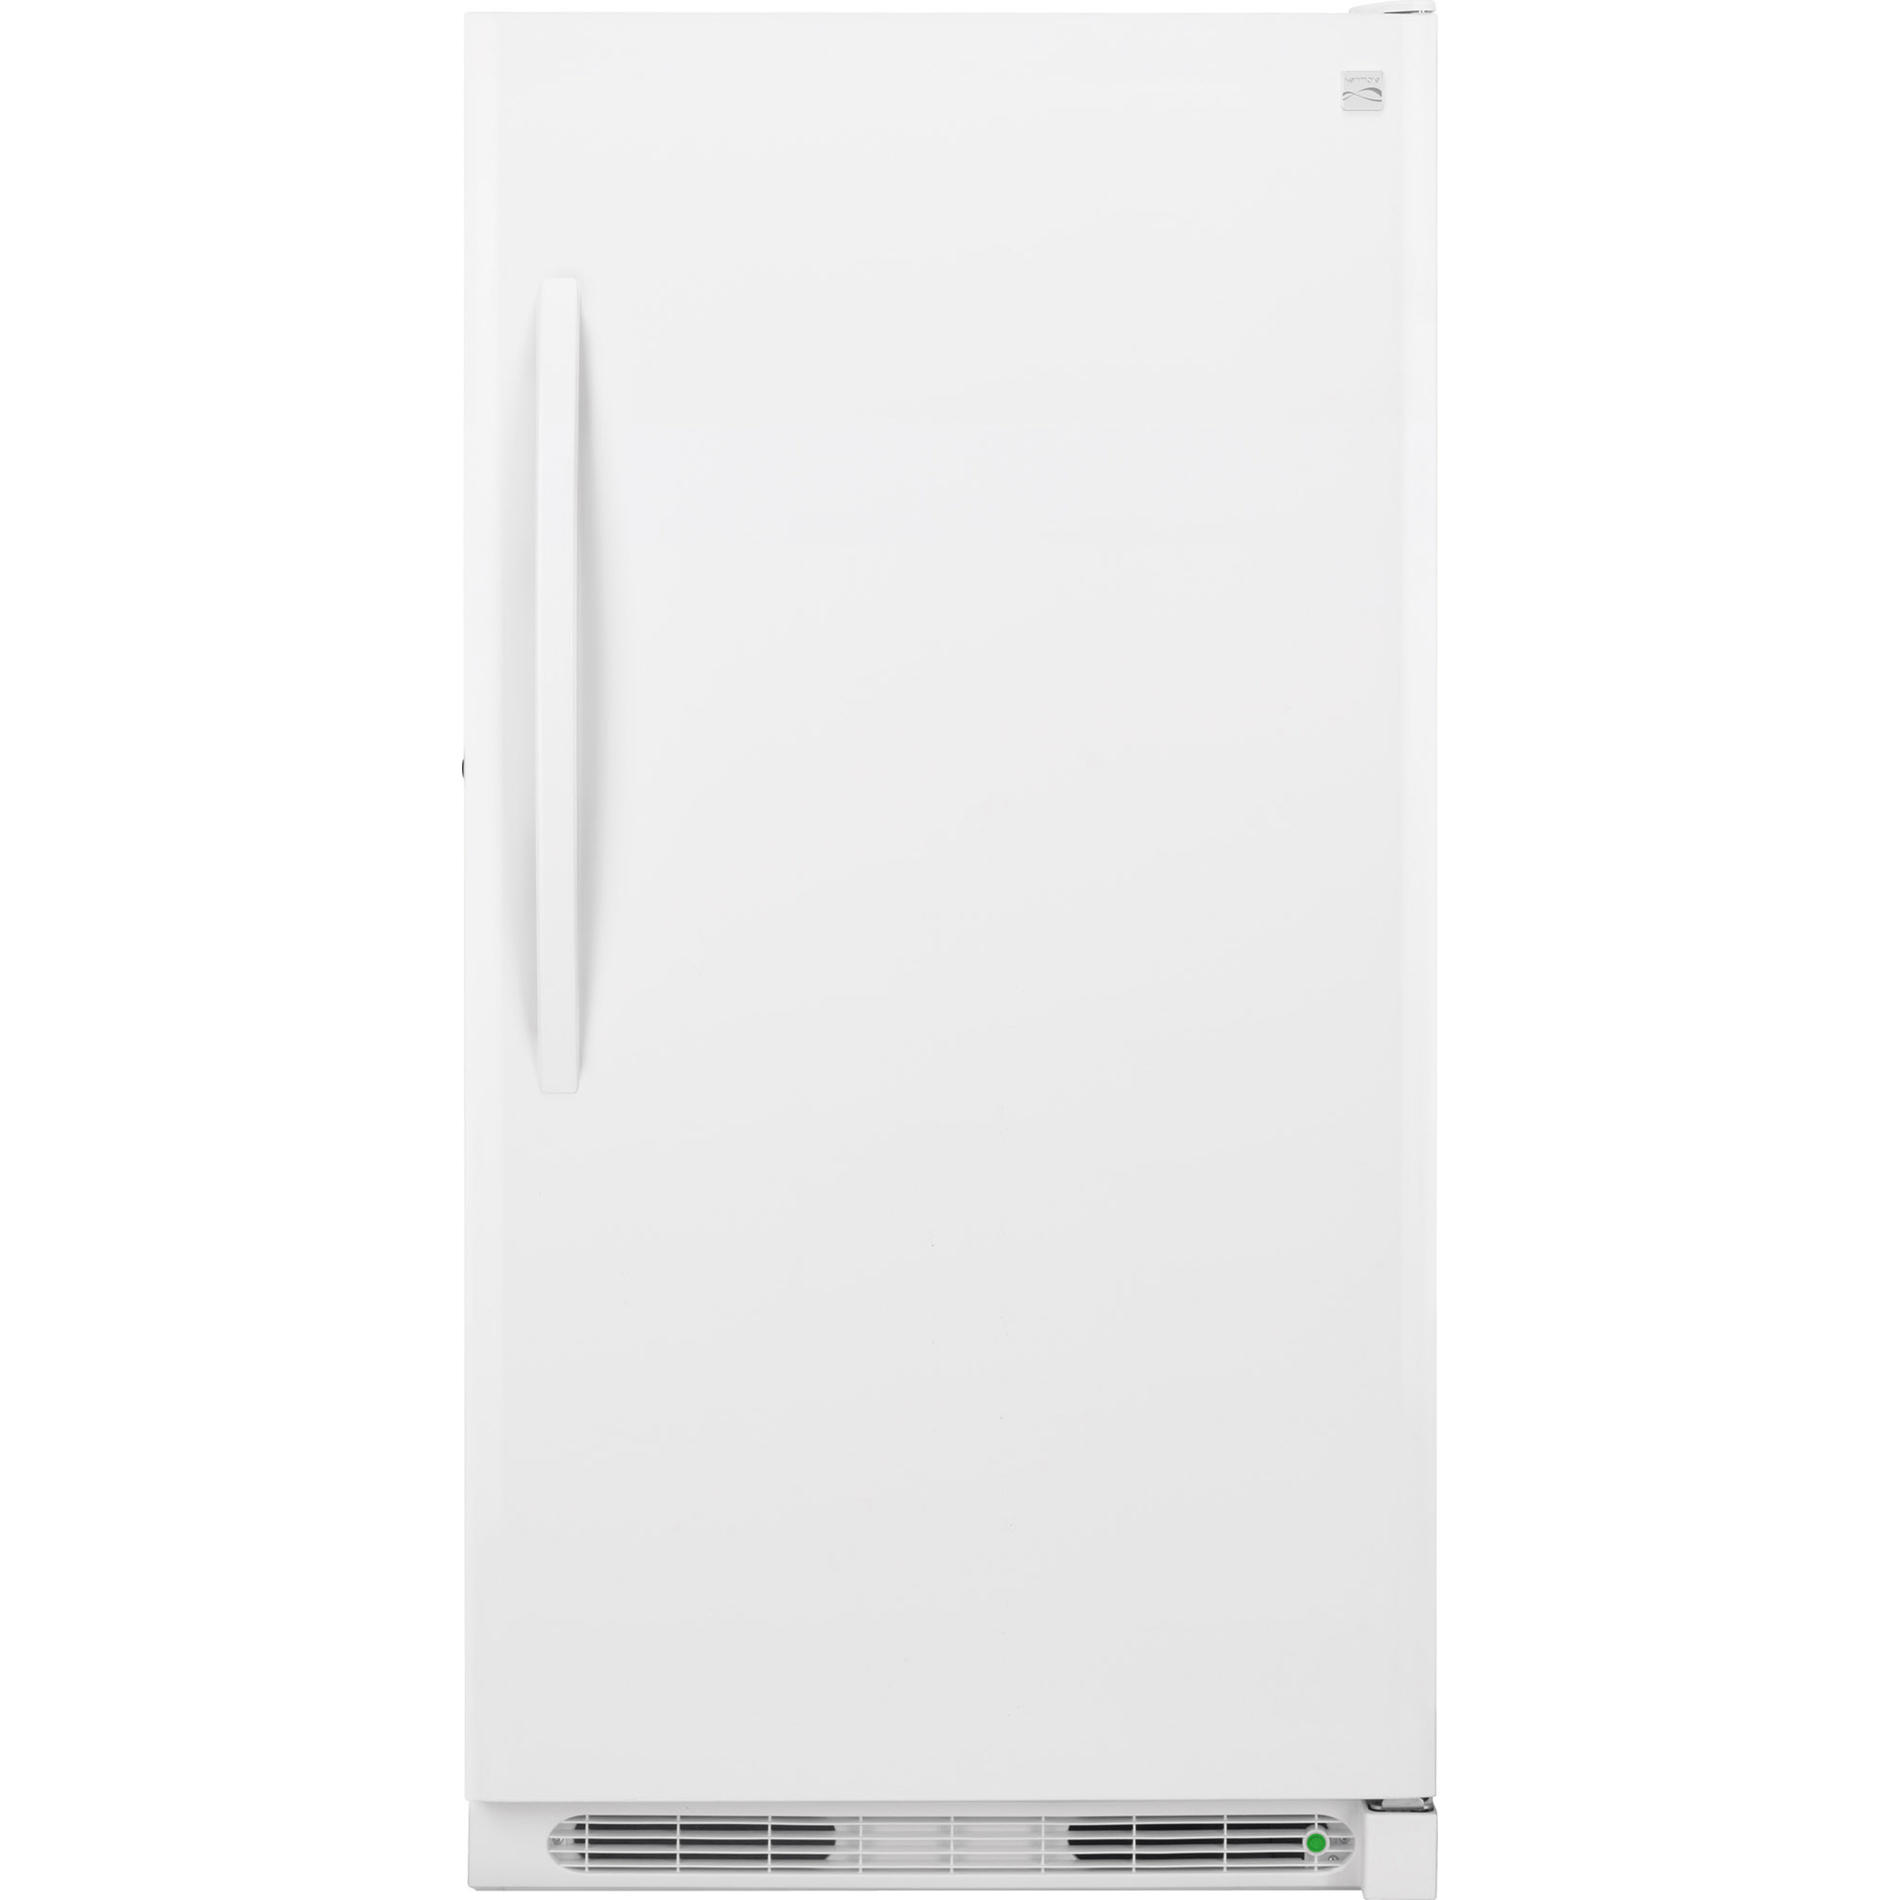 hight resolution of kenmore 22042 20 2 cu ft frost free upright freezer white freezer wiring schematic wire schematic for kenmore upright freezer